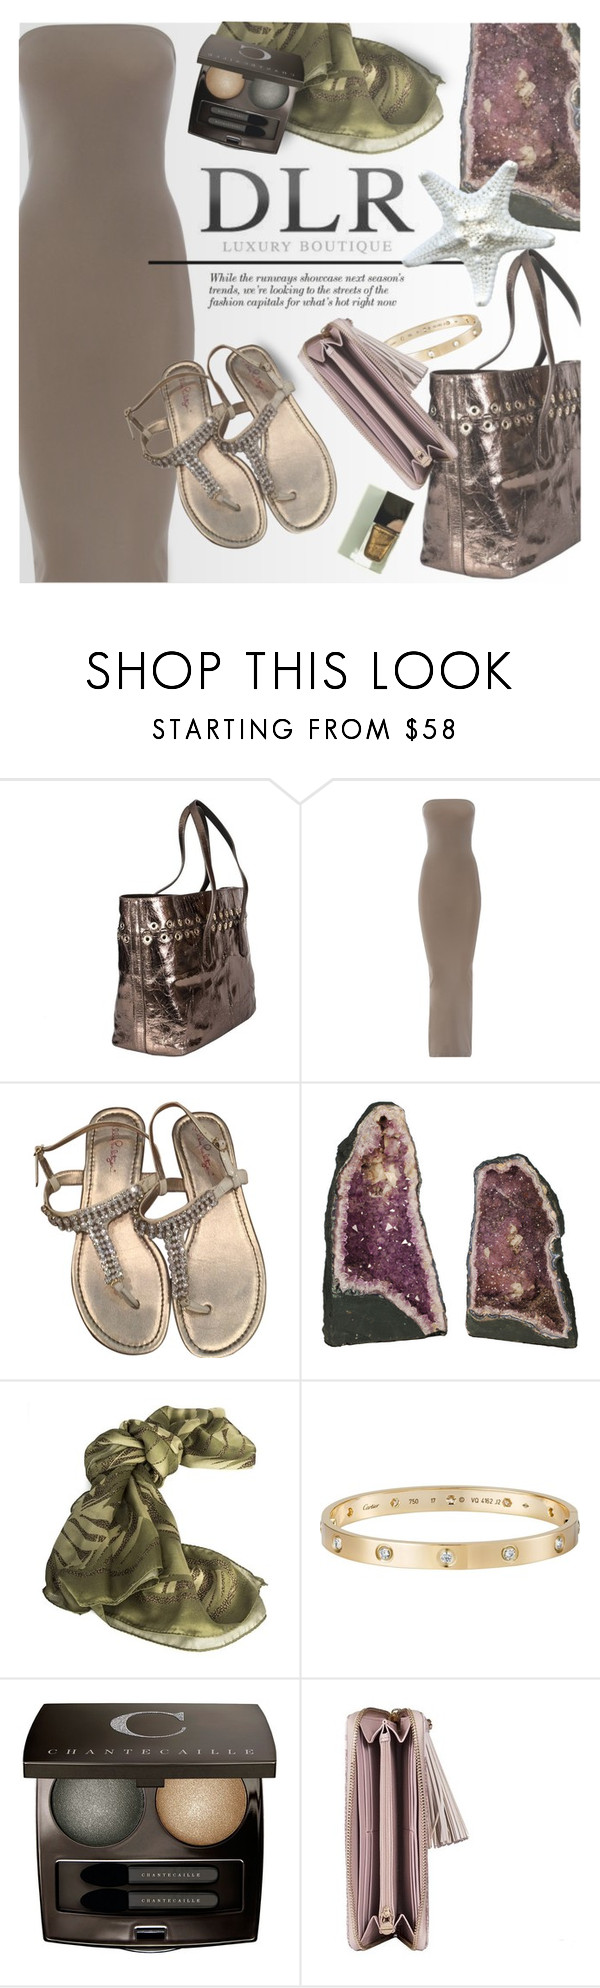 """""""Spring/Summer Sales at DLR Luxury Boutique"""" by an1ta ❤ liked on Polyvore featuring Sonia Rykiel, Wolford, Lilly Pulitzer, CO, Borbonese, Cartier and Chantecaille"""